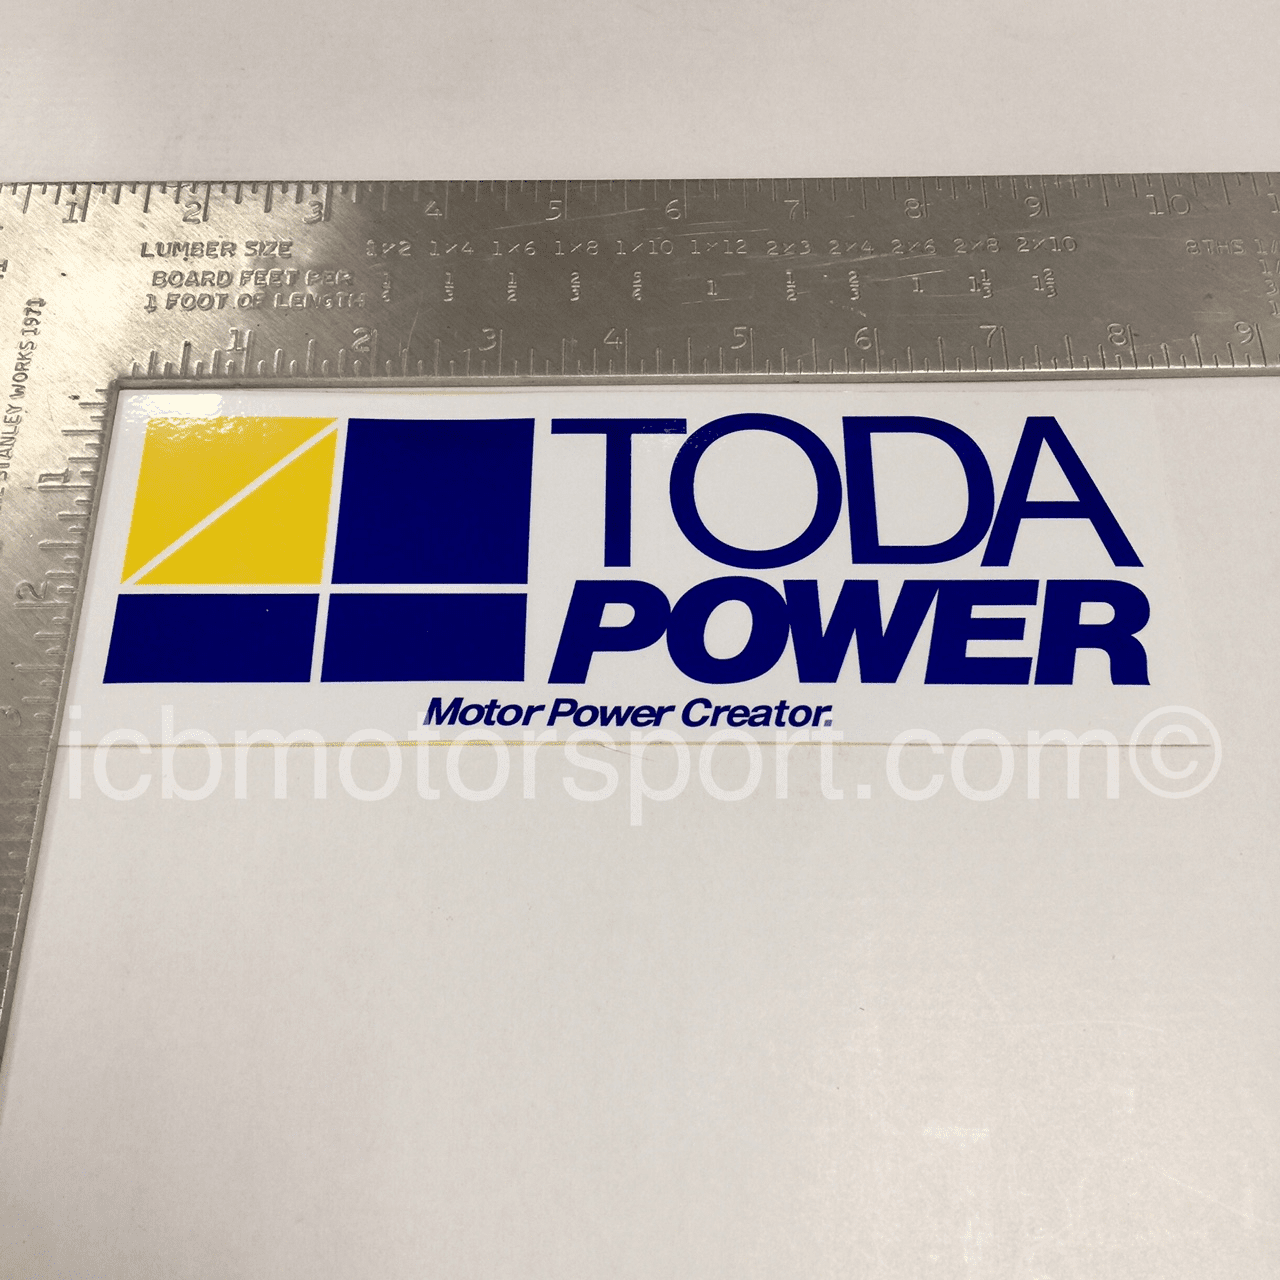 "TODA Power 8"" Blue Sticker - Free Shipping"